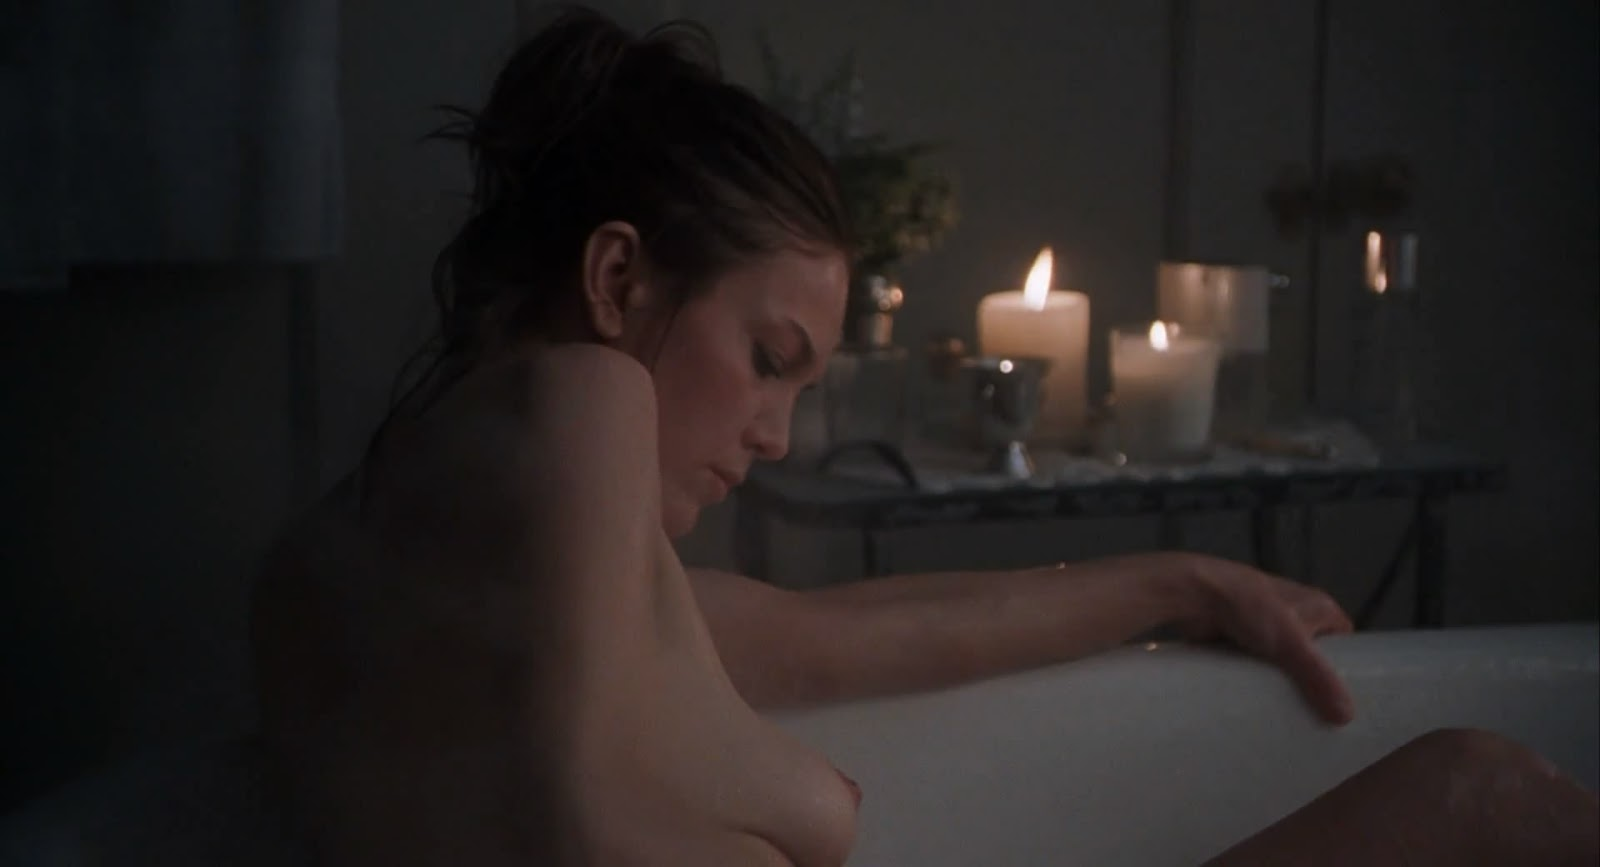 Nude movie scenes compilation with you